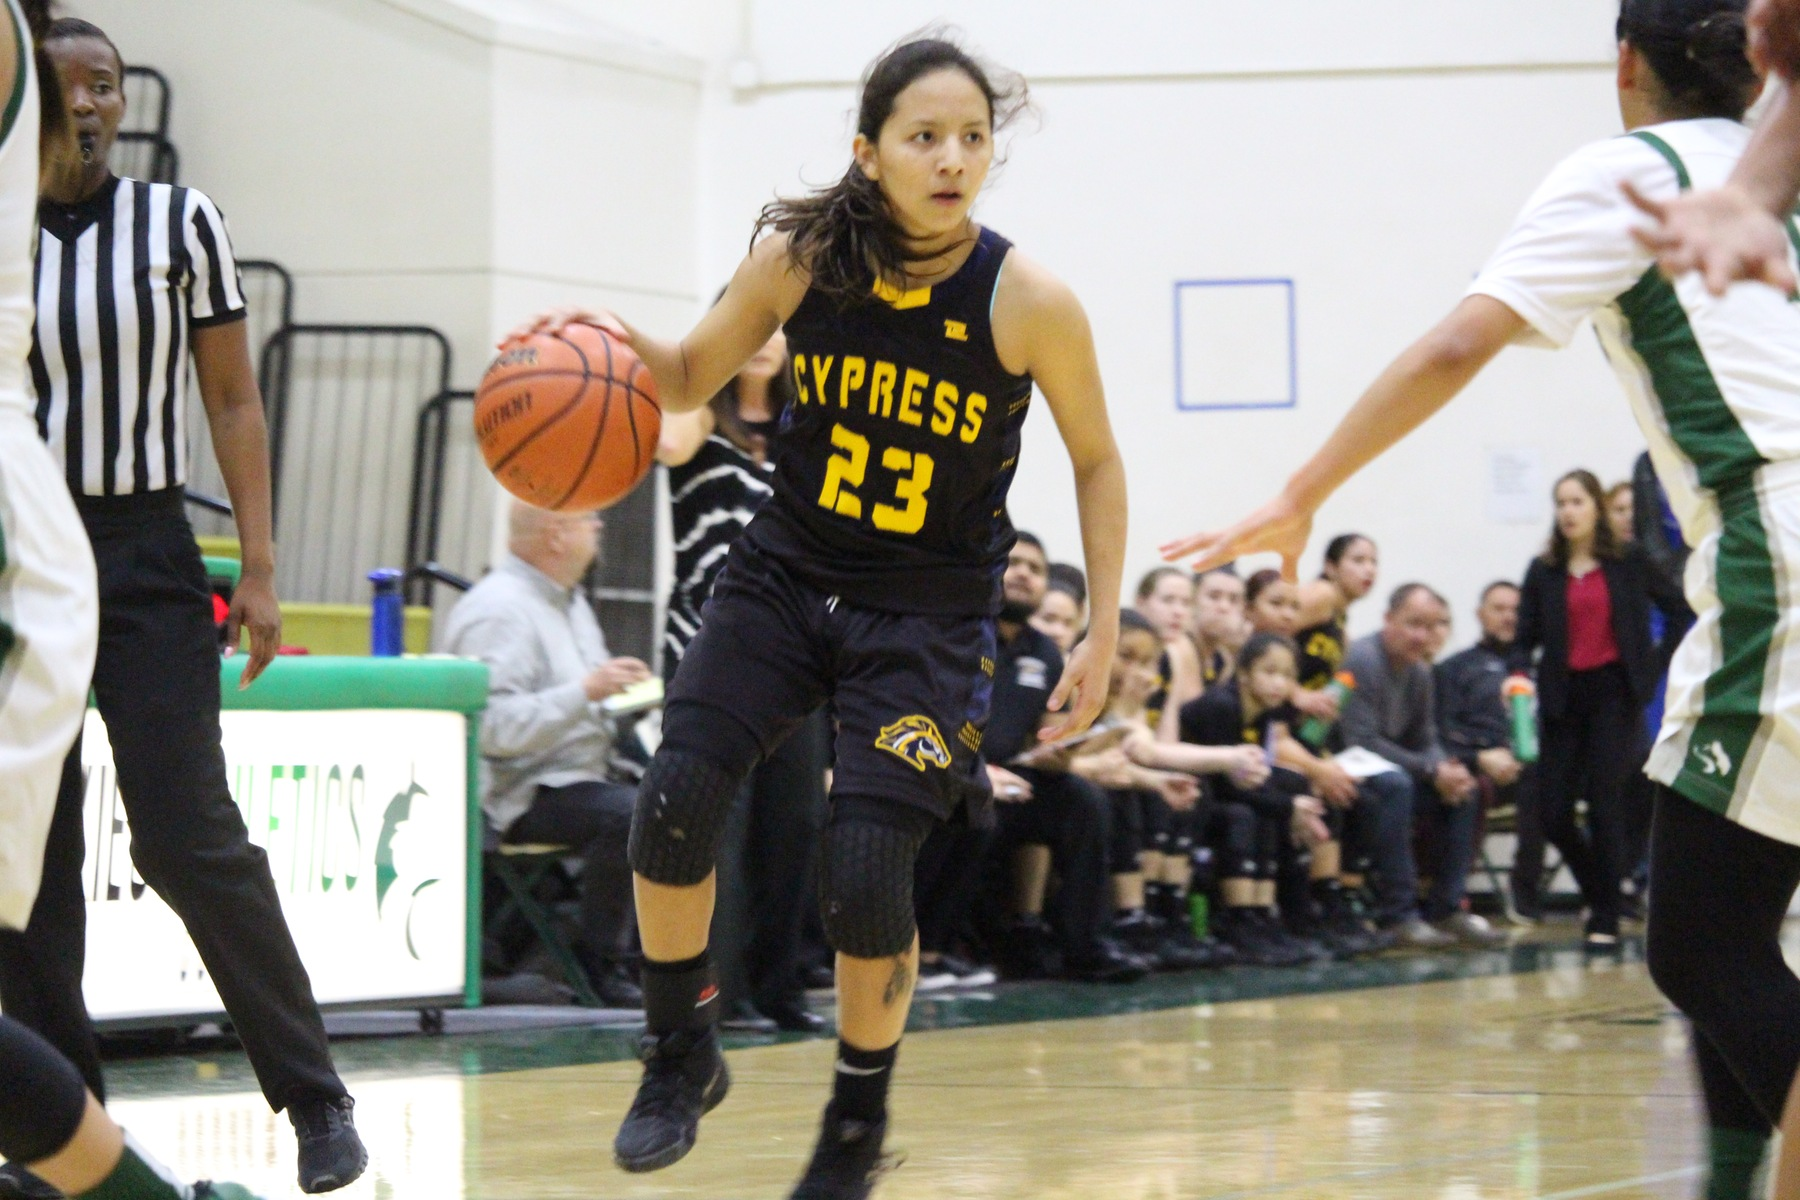 Chargers Take Down Grossmont and Citrus, Advance to Tournament Championship